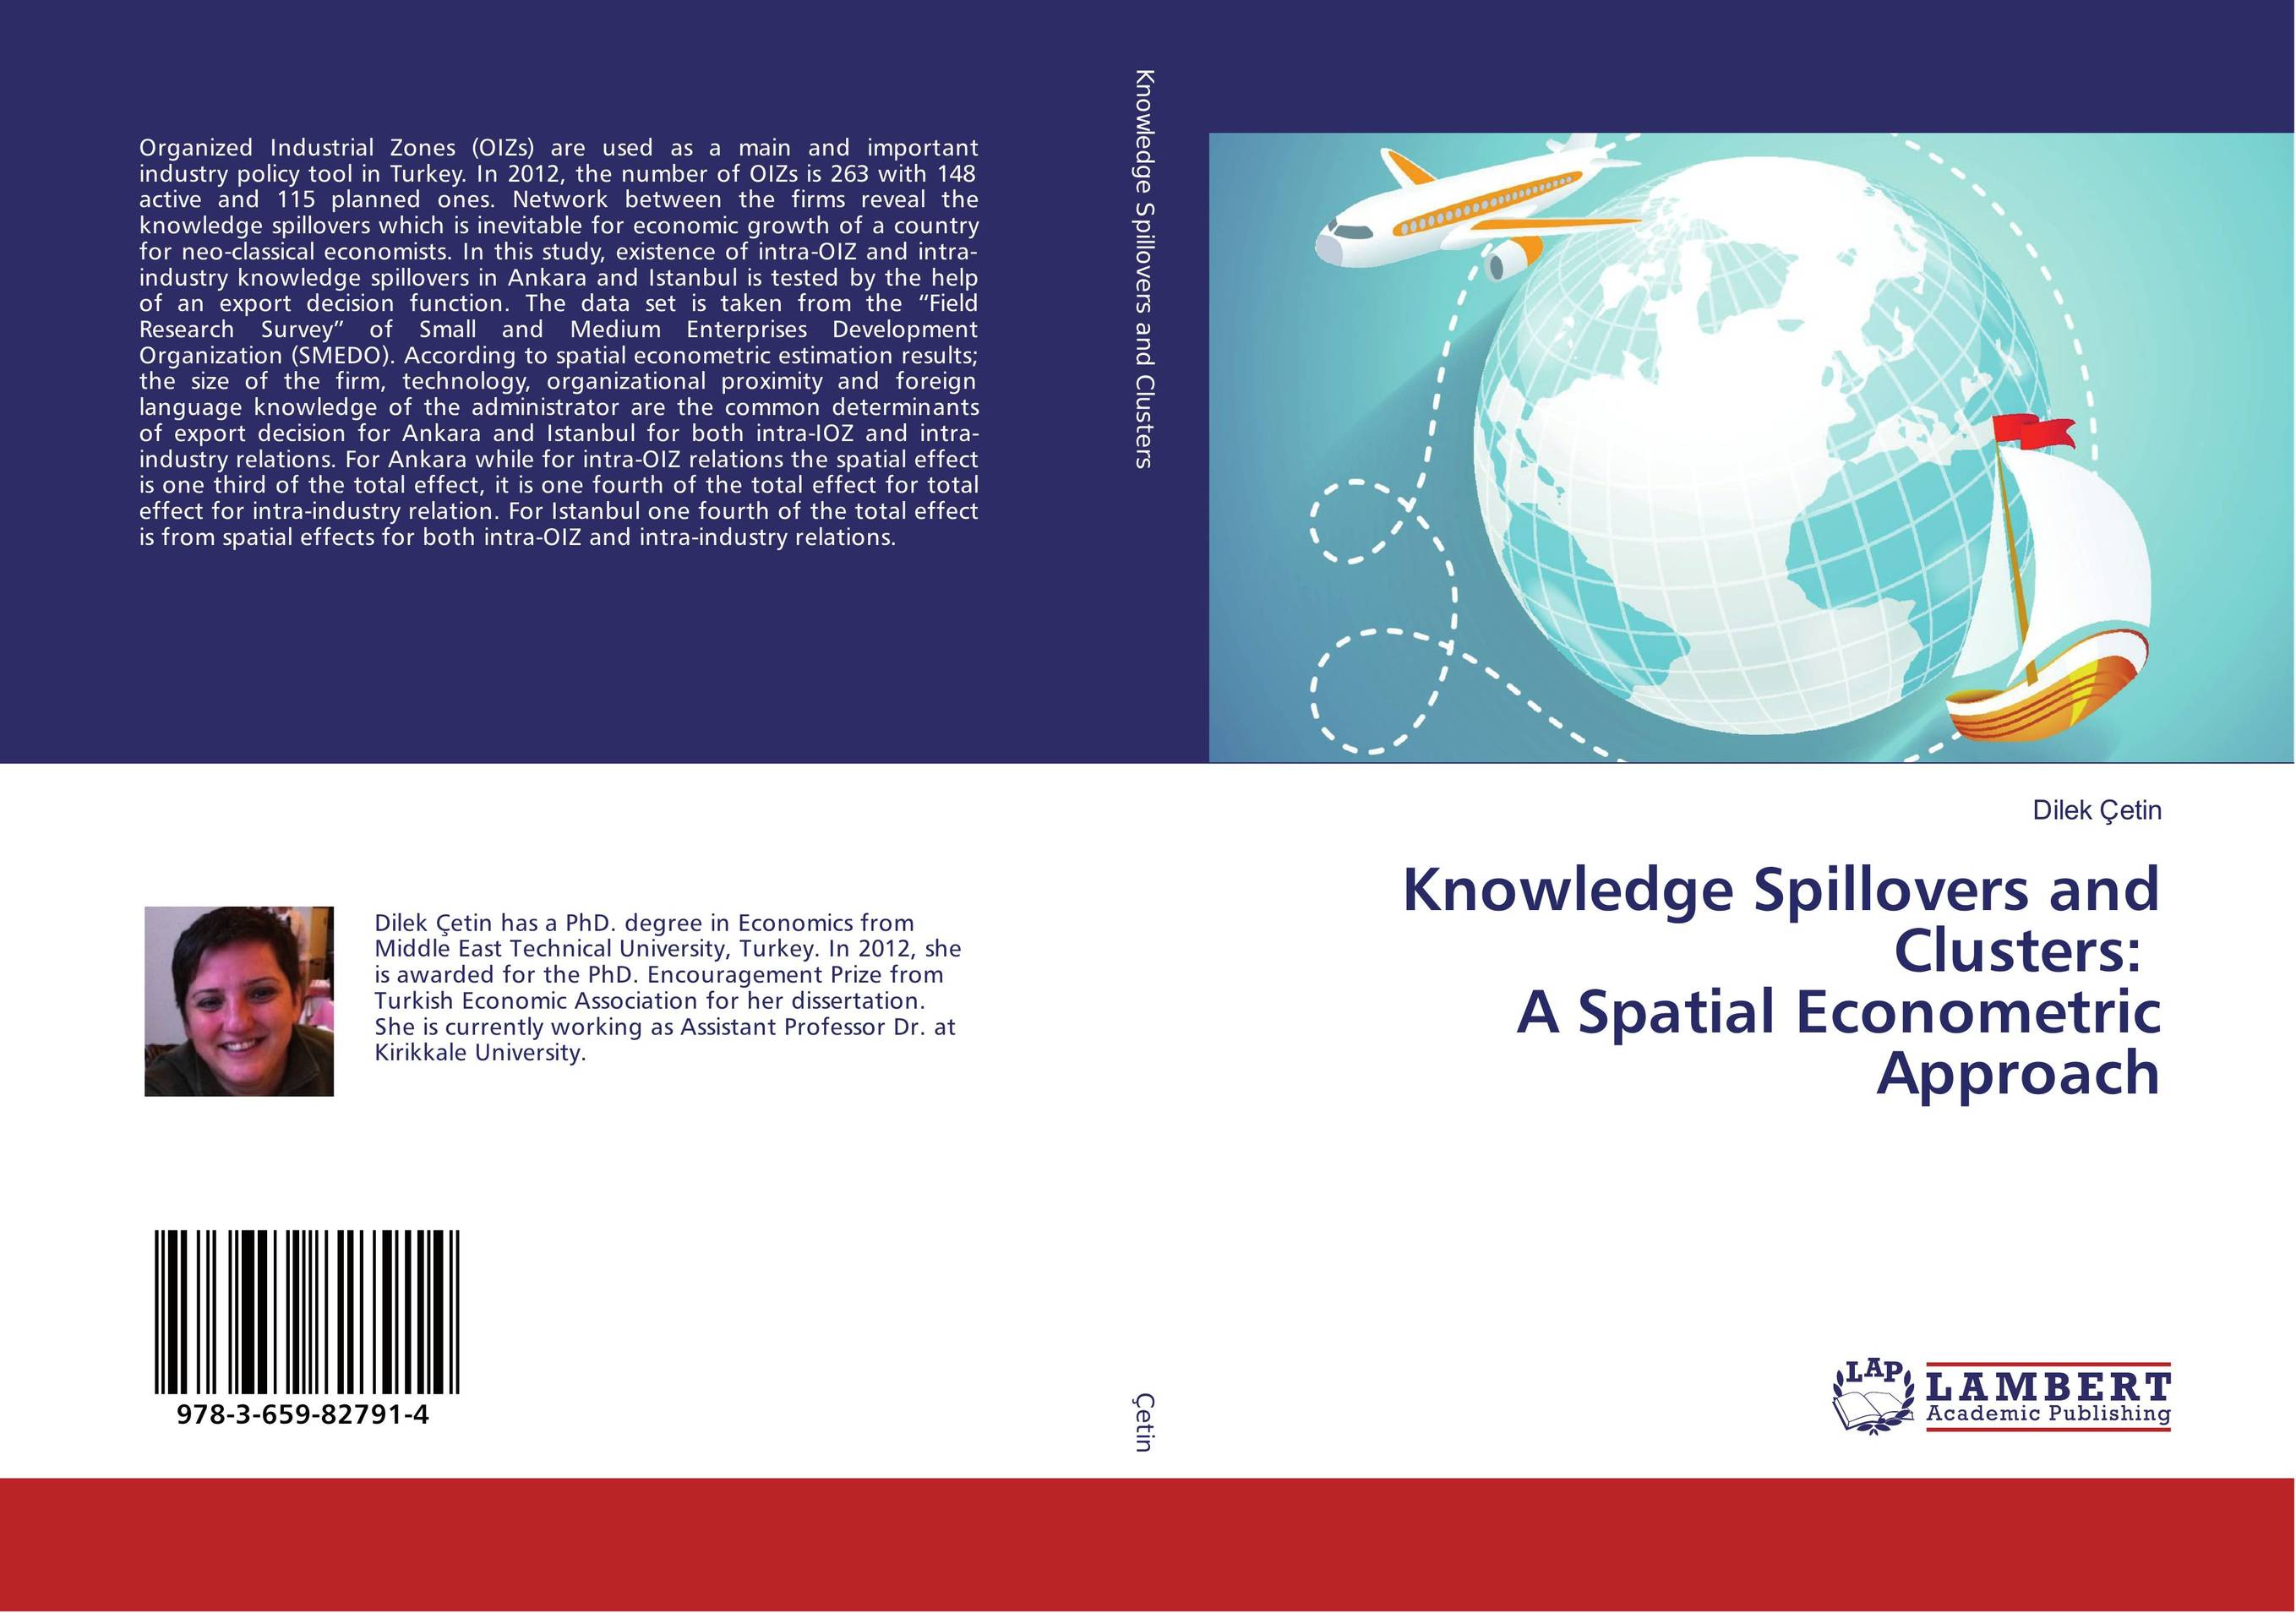 Knowledge Spillovers and Clusters: A Spatial Econometric Approach